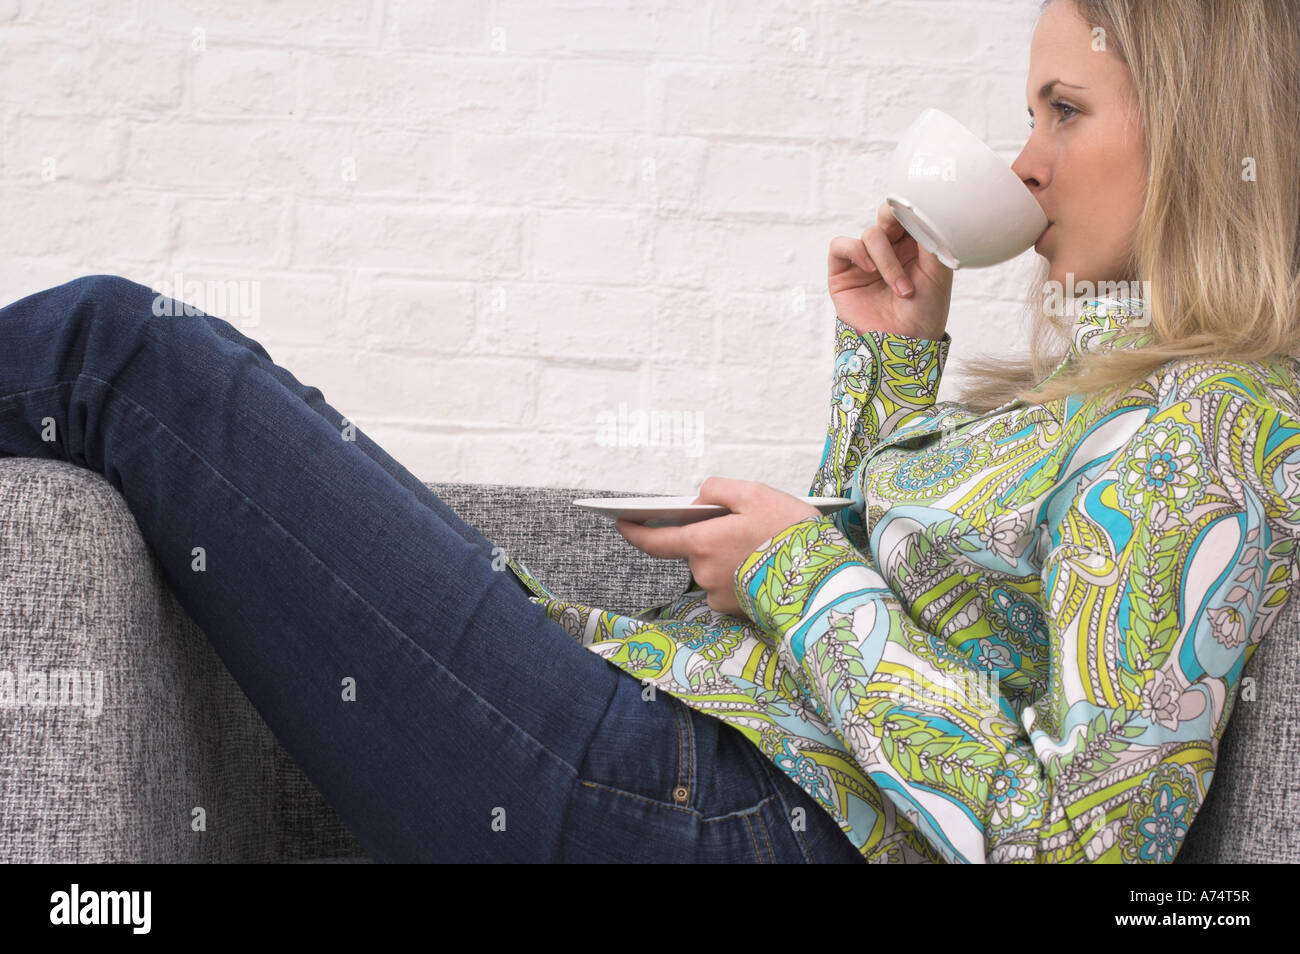 side view of young woman relaxing on armchair drinking cup of tea Stock Photo